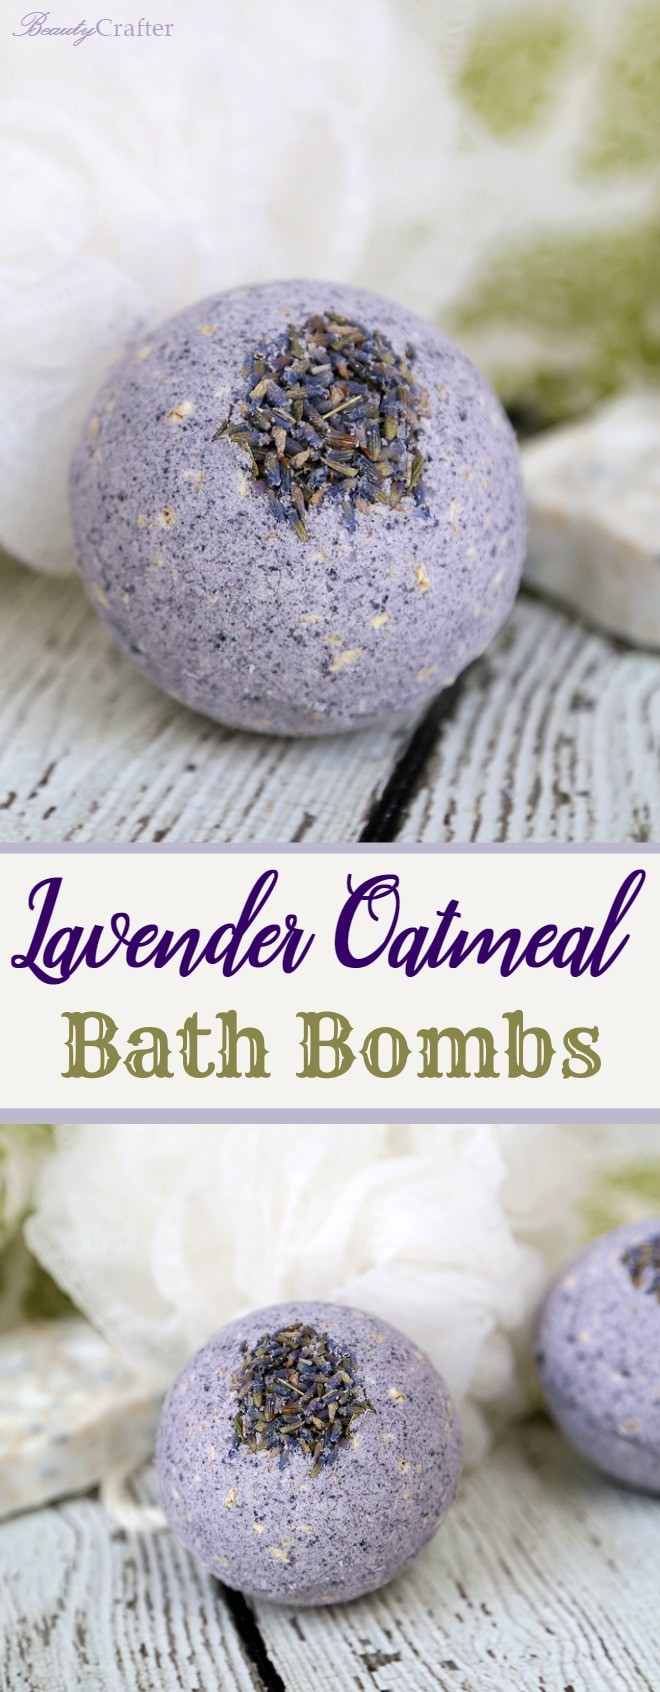 Lavender Oatmeal Bath Bombs Recipe A Soothing DIY Gift